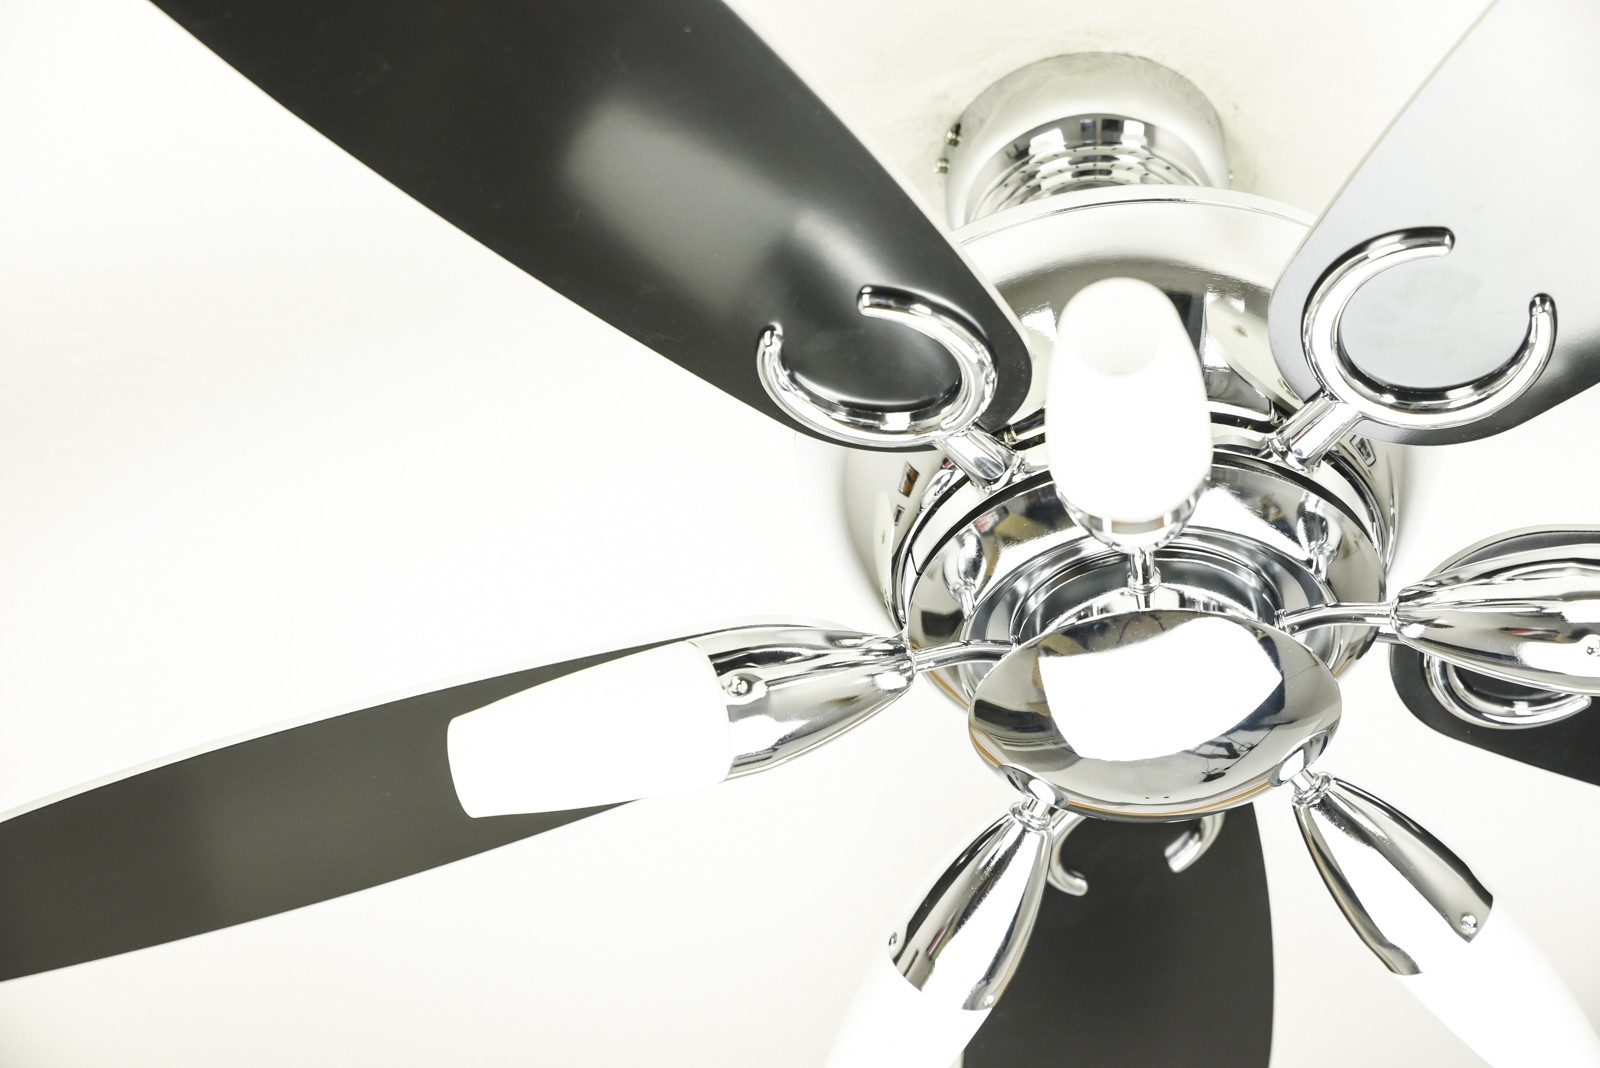 Ceiling Fan Arius 132cm 52 Quot With Light And Remote